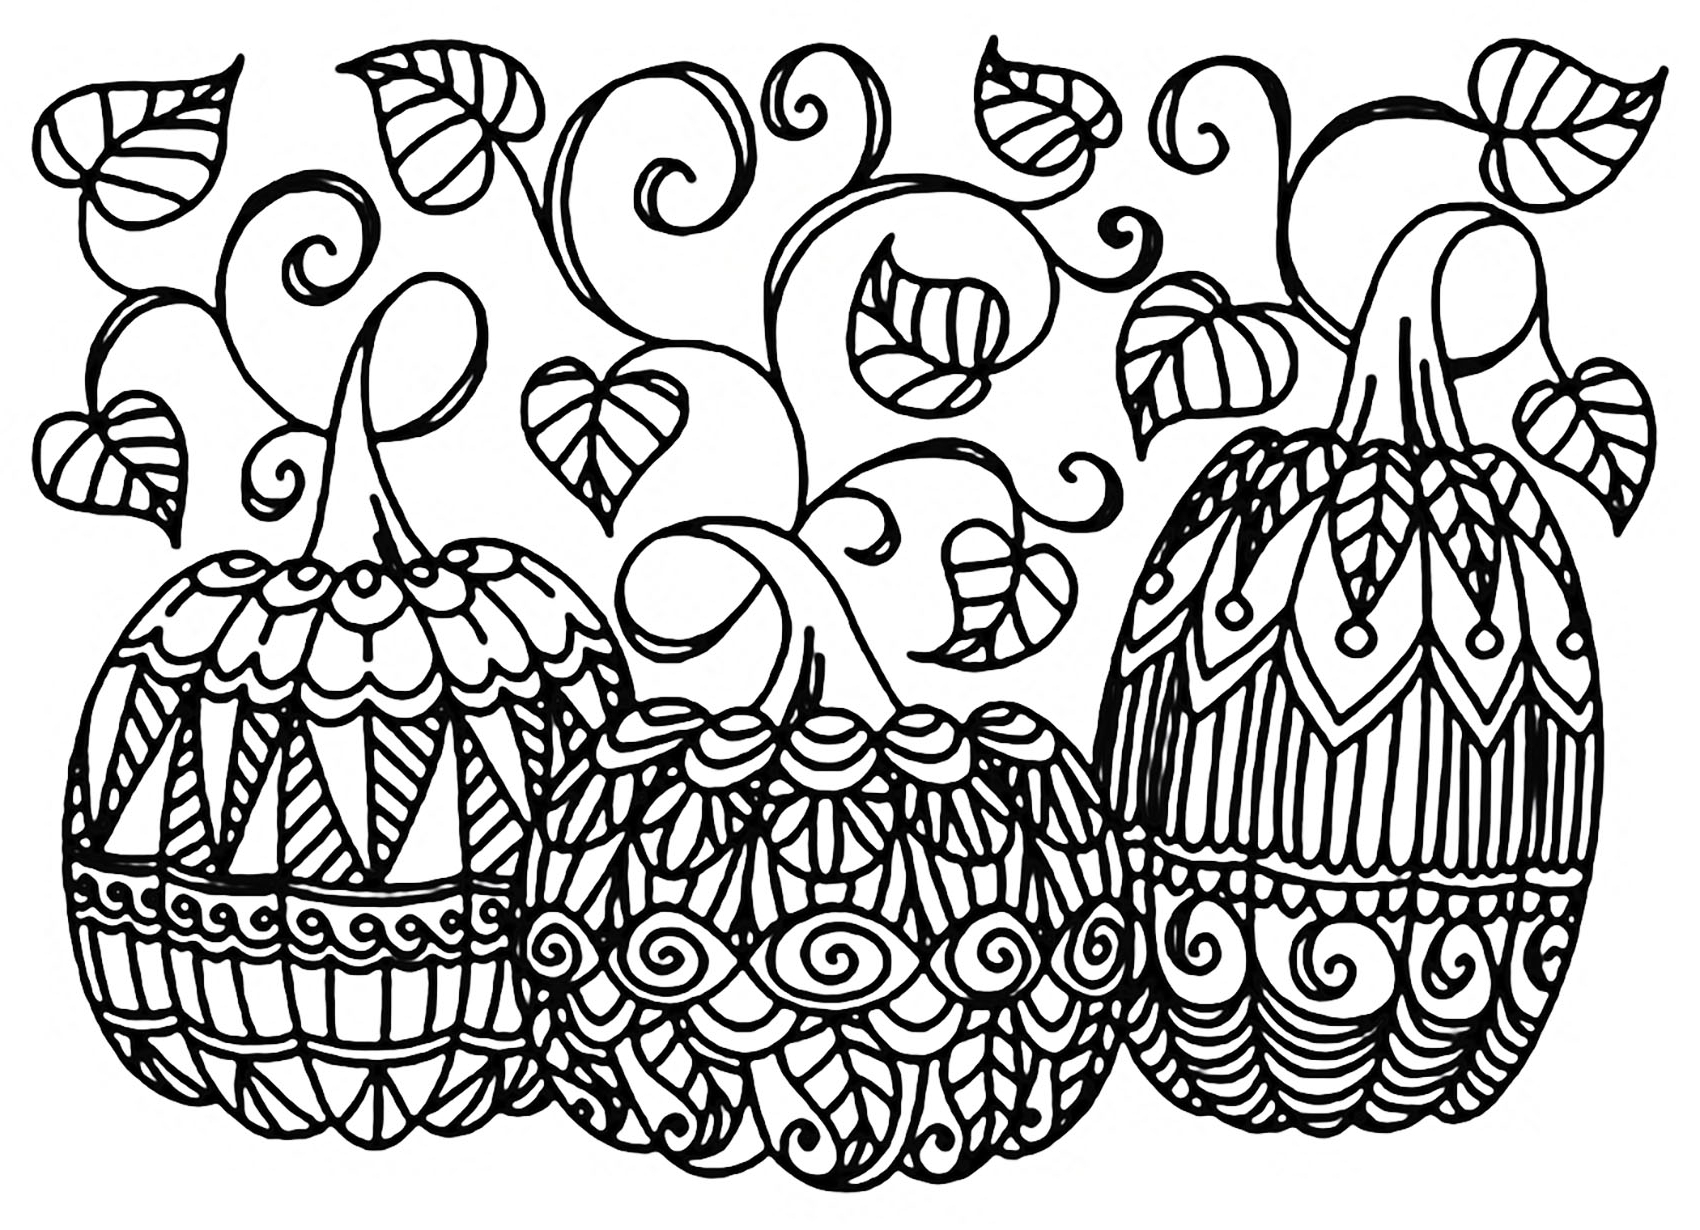 Free Printable Halloween Coloring Page Coloring Design Free Printable Halloween Coloring Pages Capricus